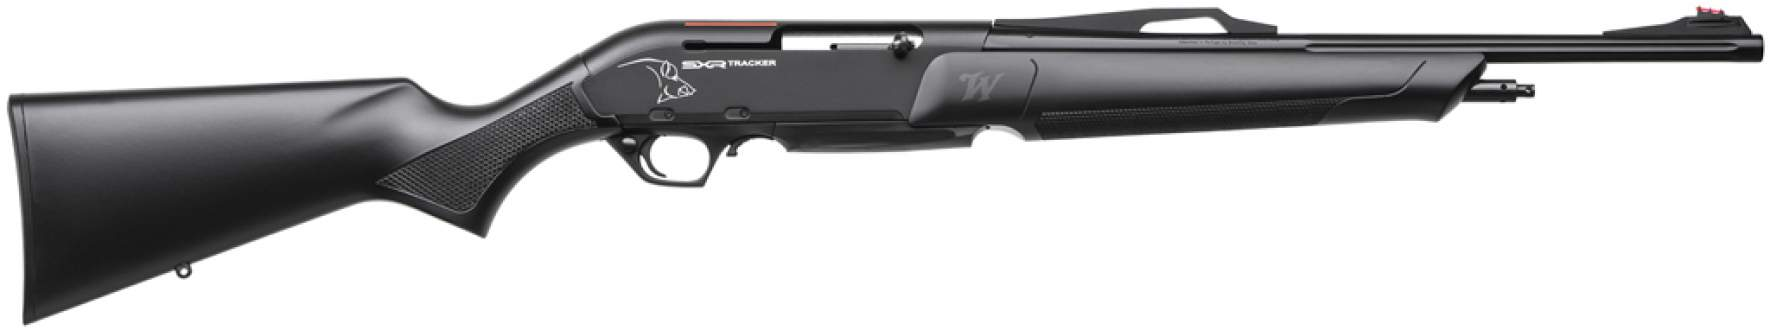 Карабин Winchester SXR Black Tracker Fluted кал. 308 Win